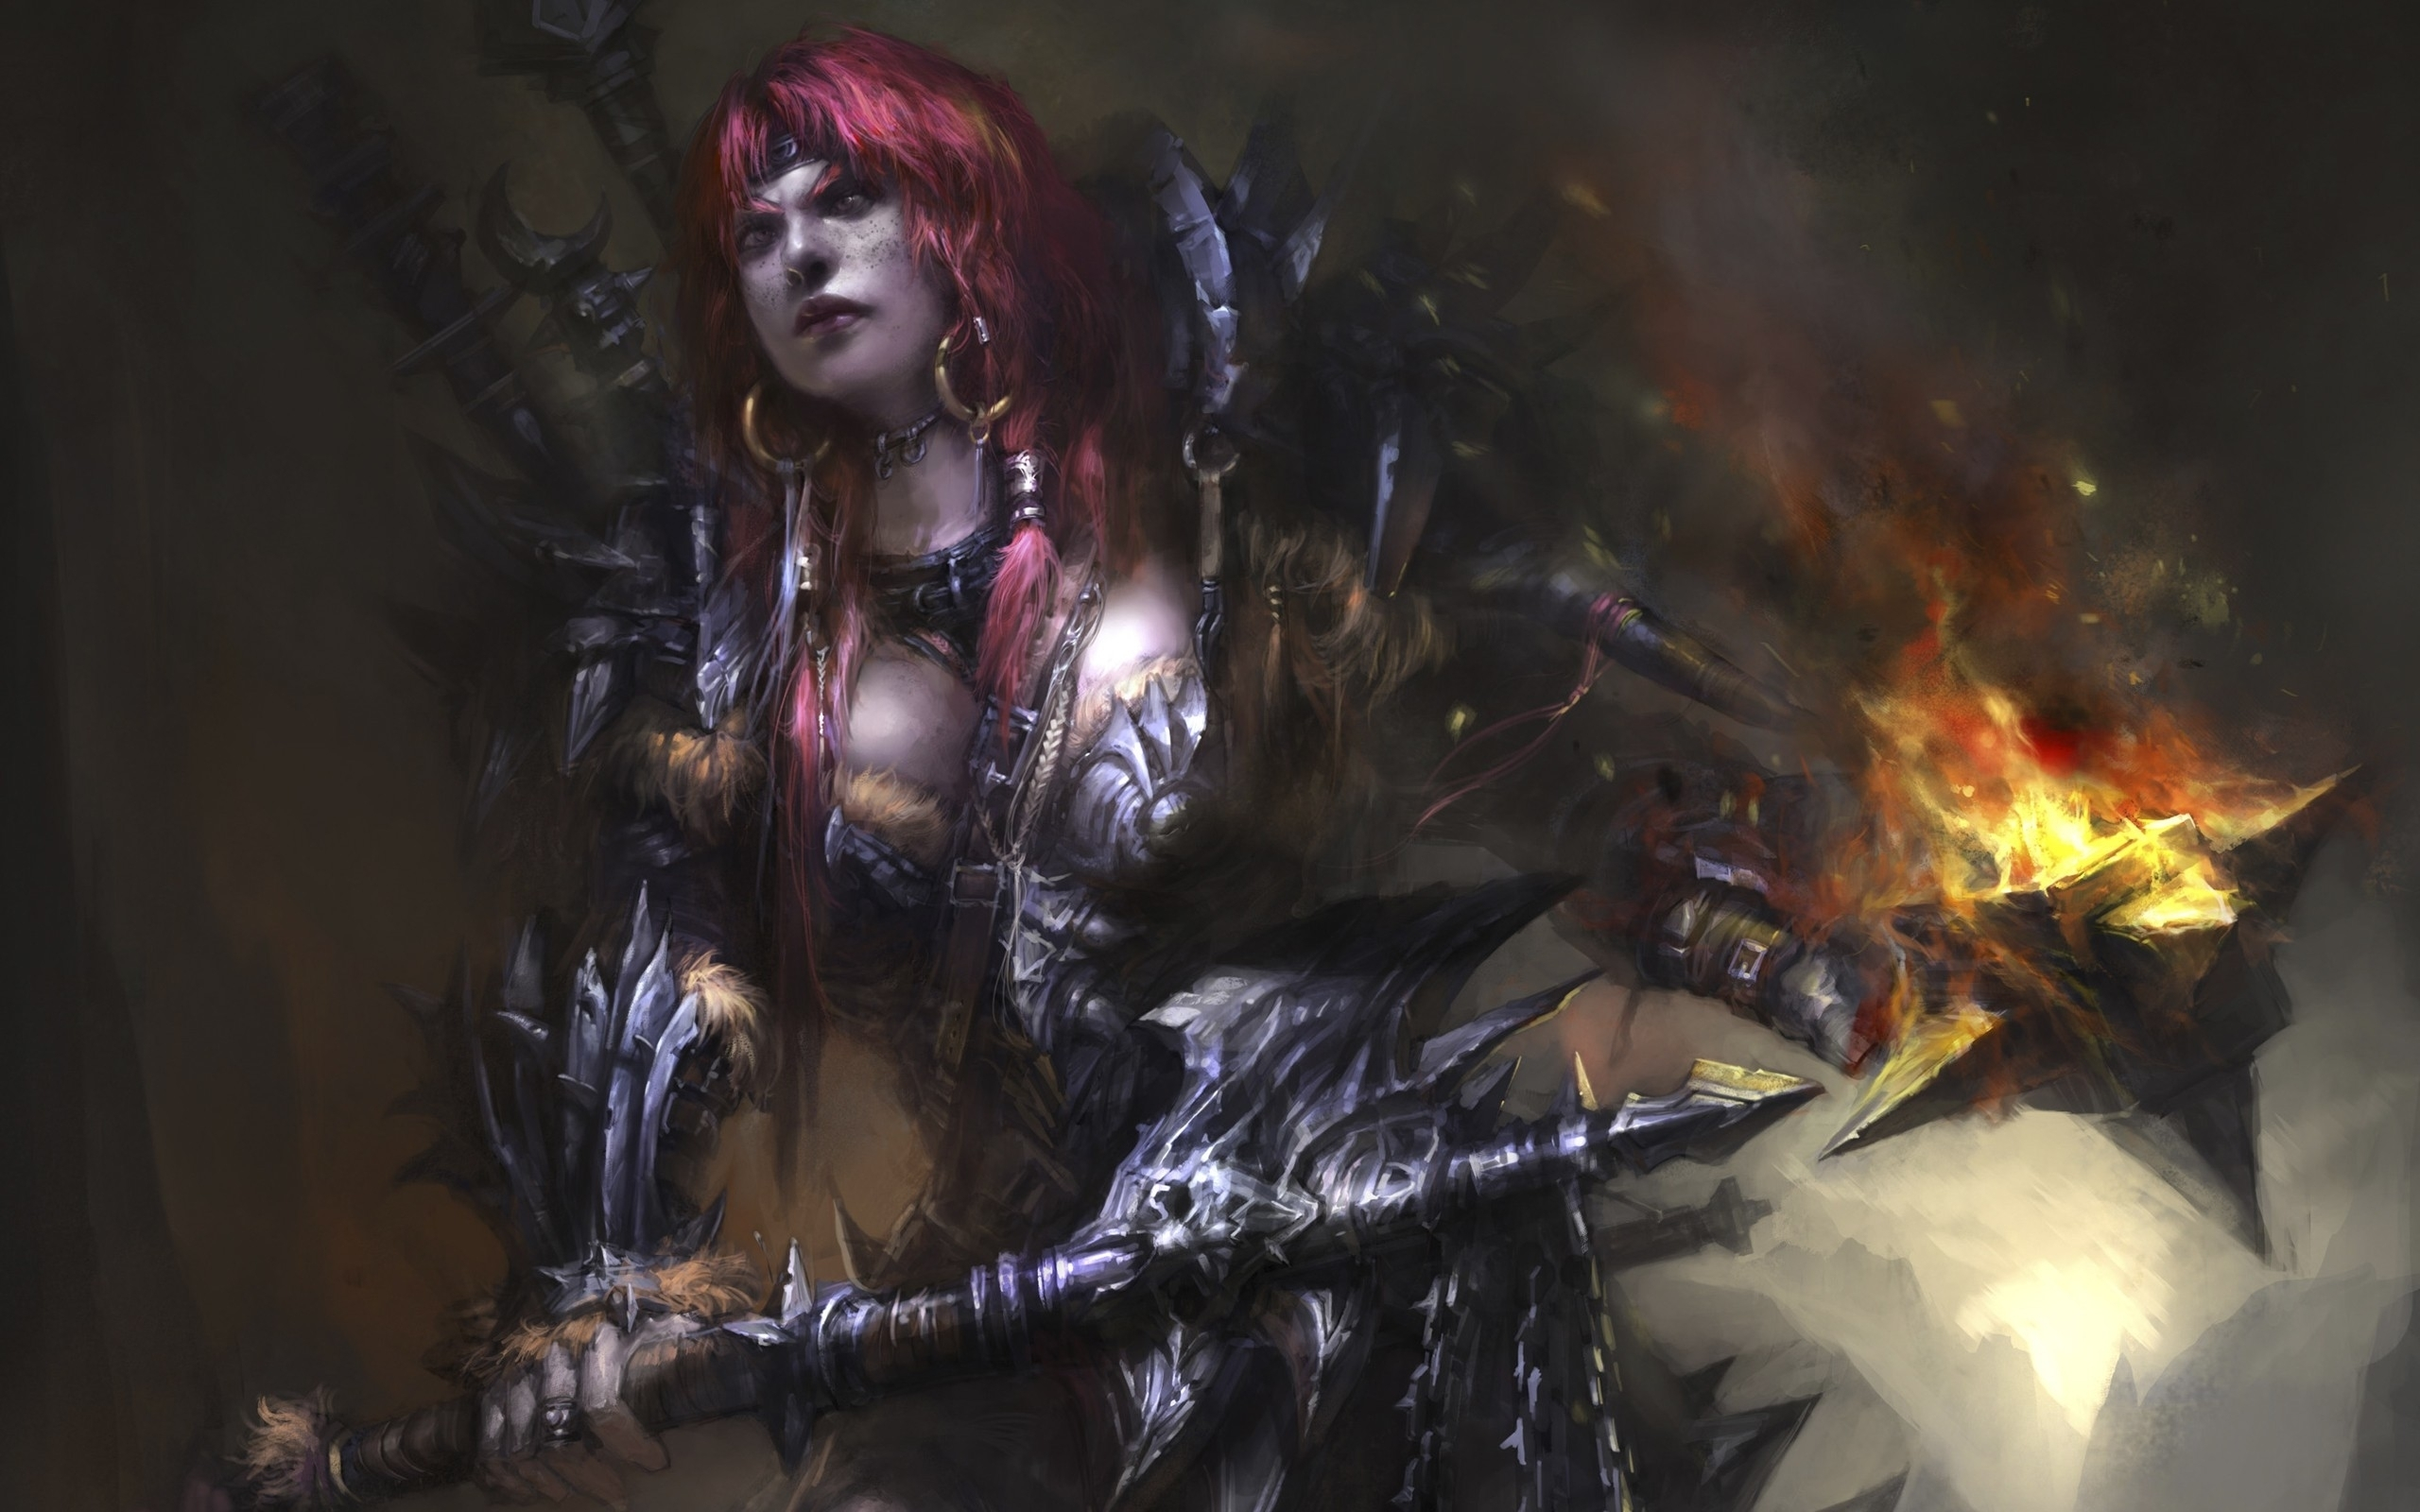 games redheads fantasy art armor barbarian artwork HD Wallpapers 2560x1600